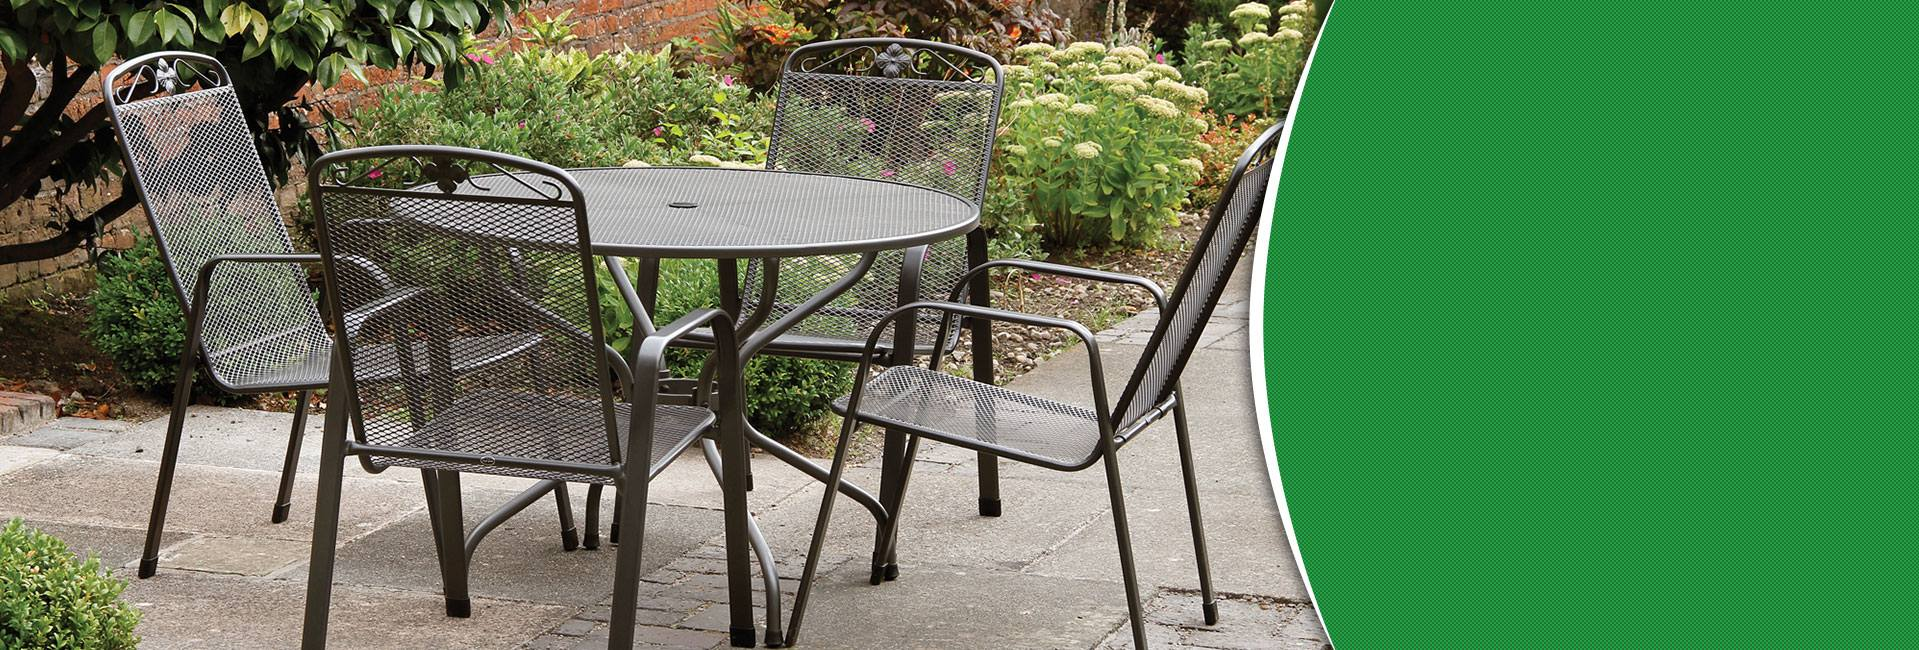 View More U003e; Bistro Sets For Your Leisure Time